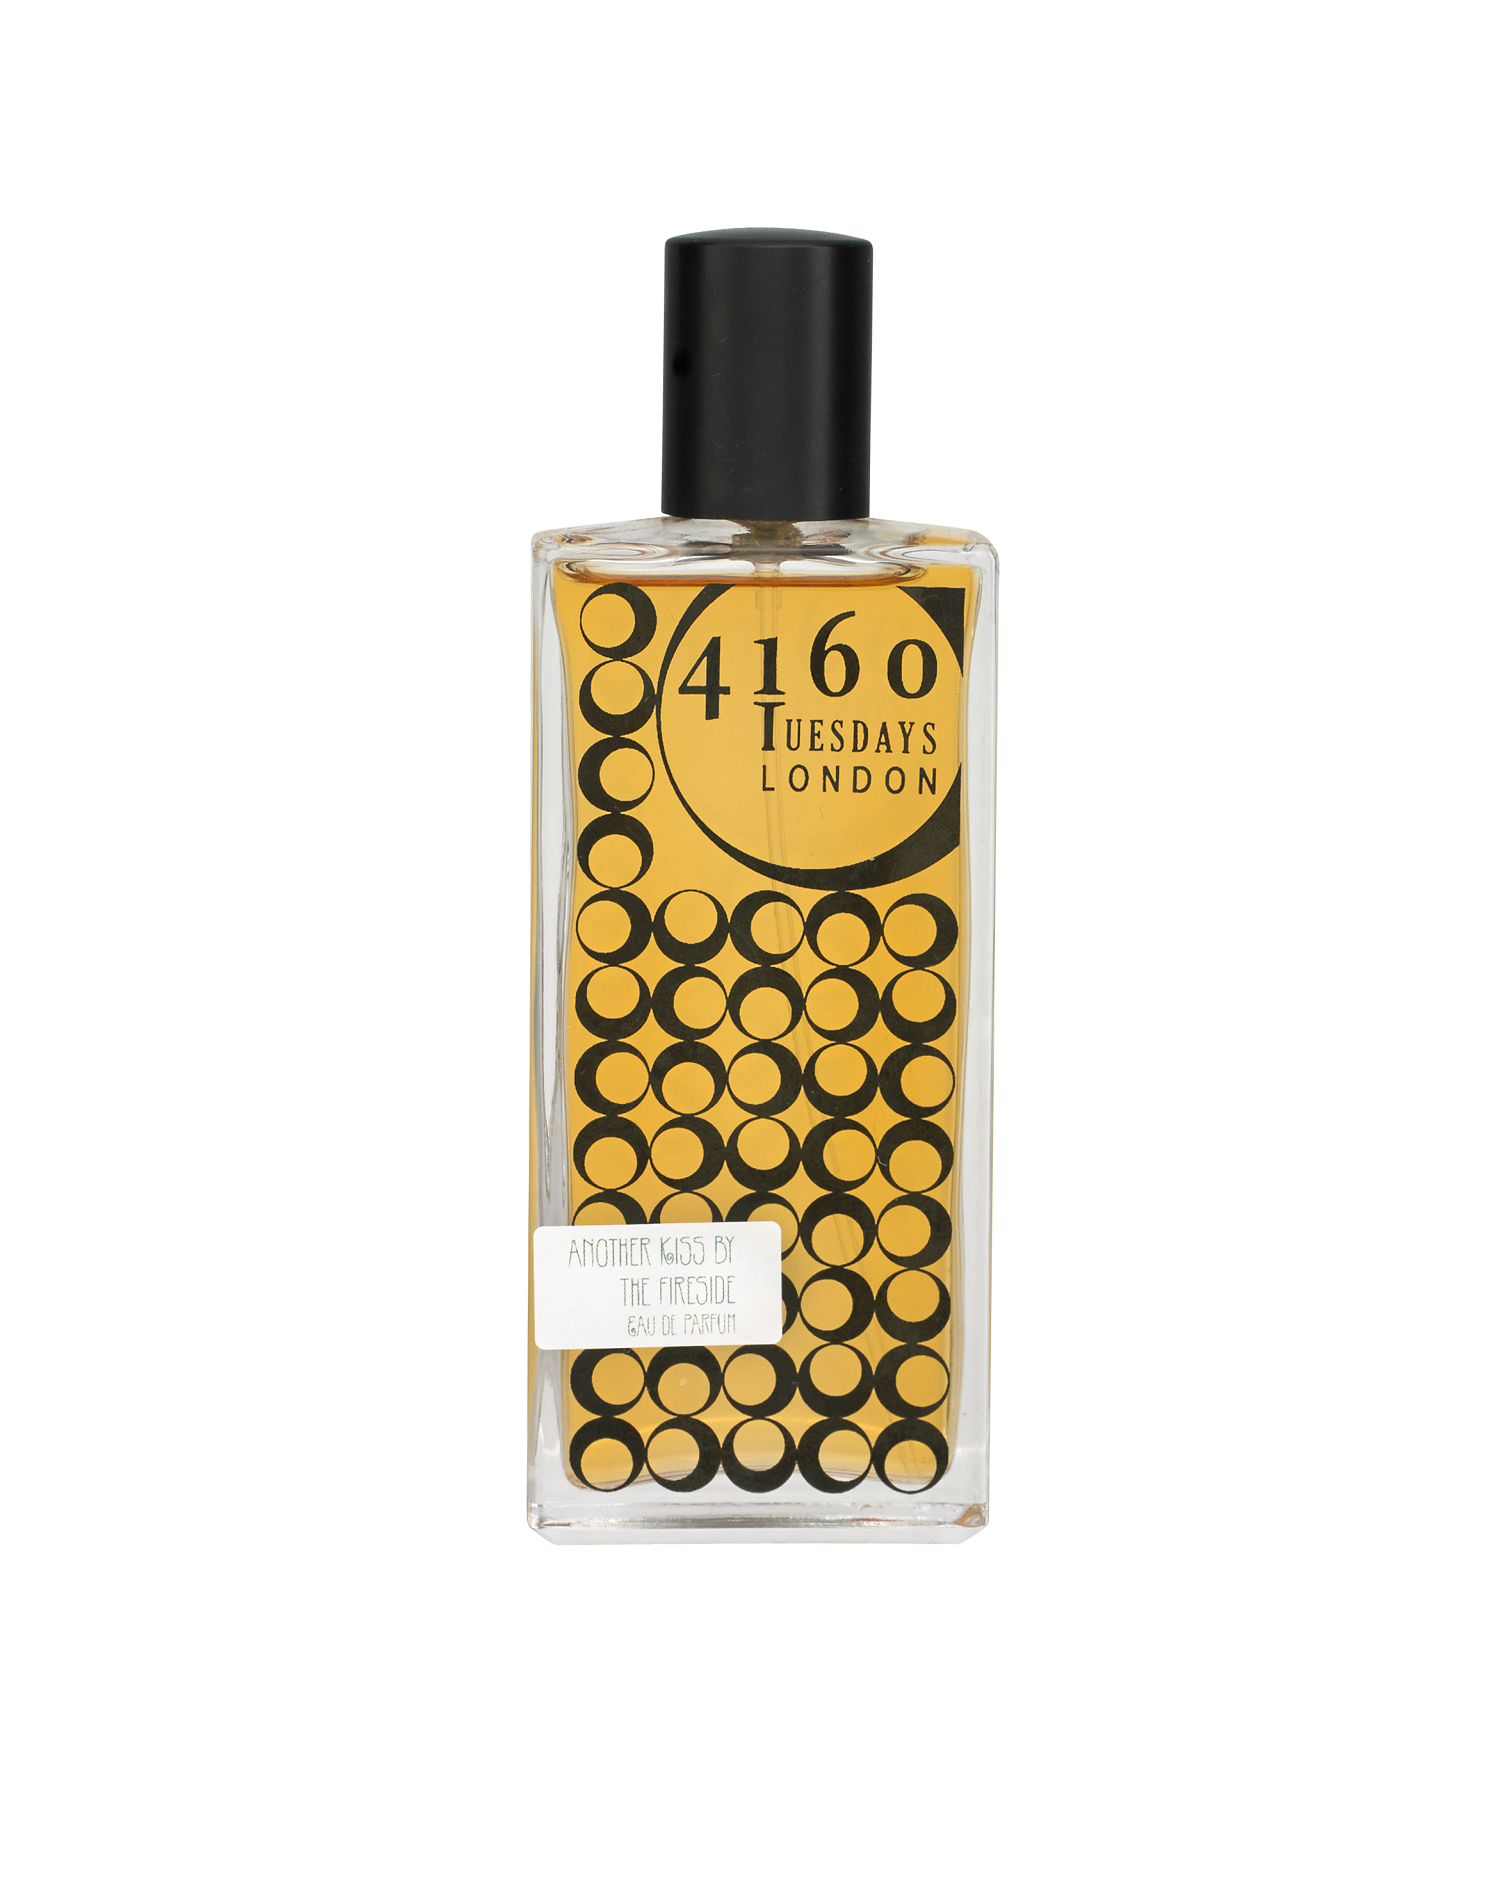 4160Tuesdays perfume Another Kiss by the Fireside in black bottle